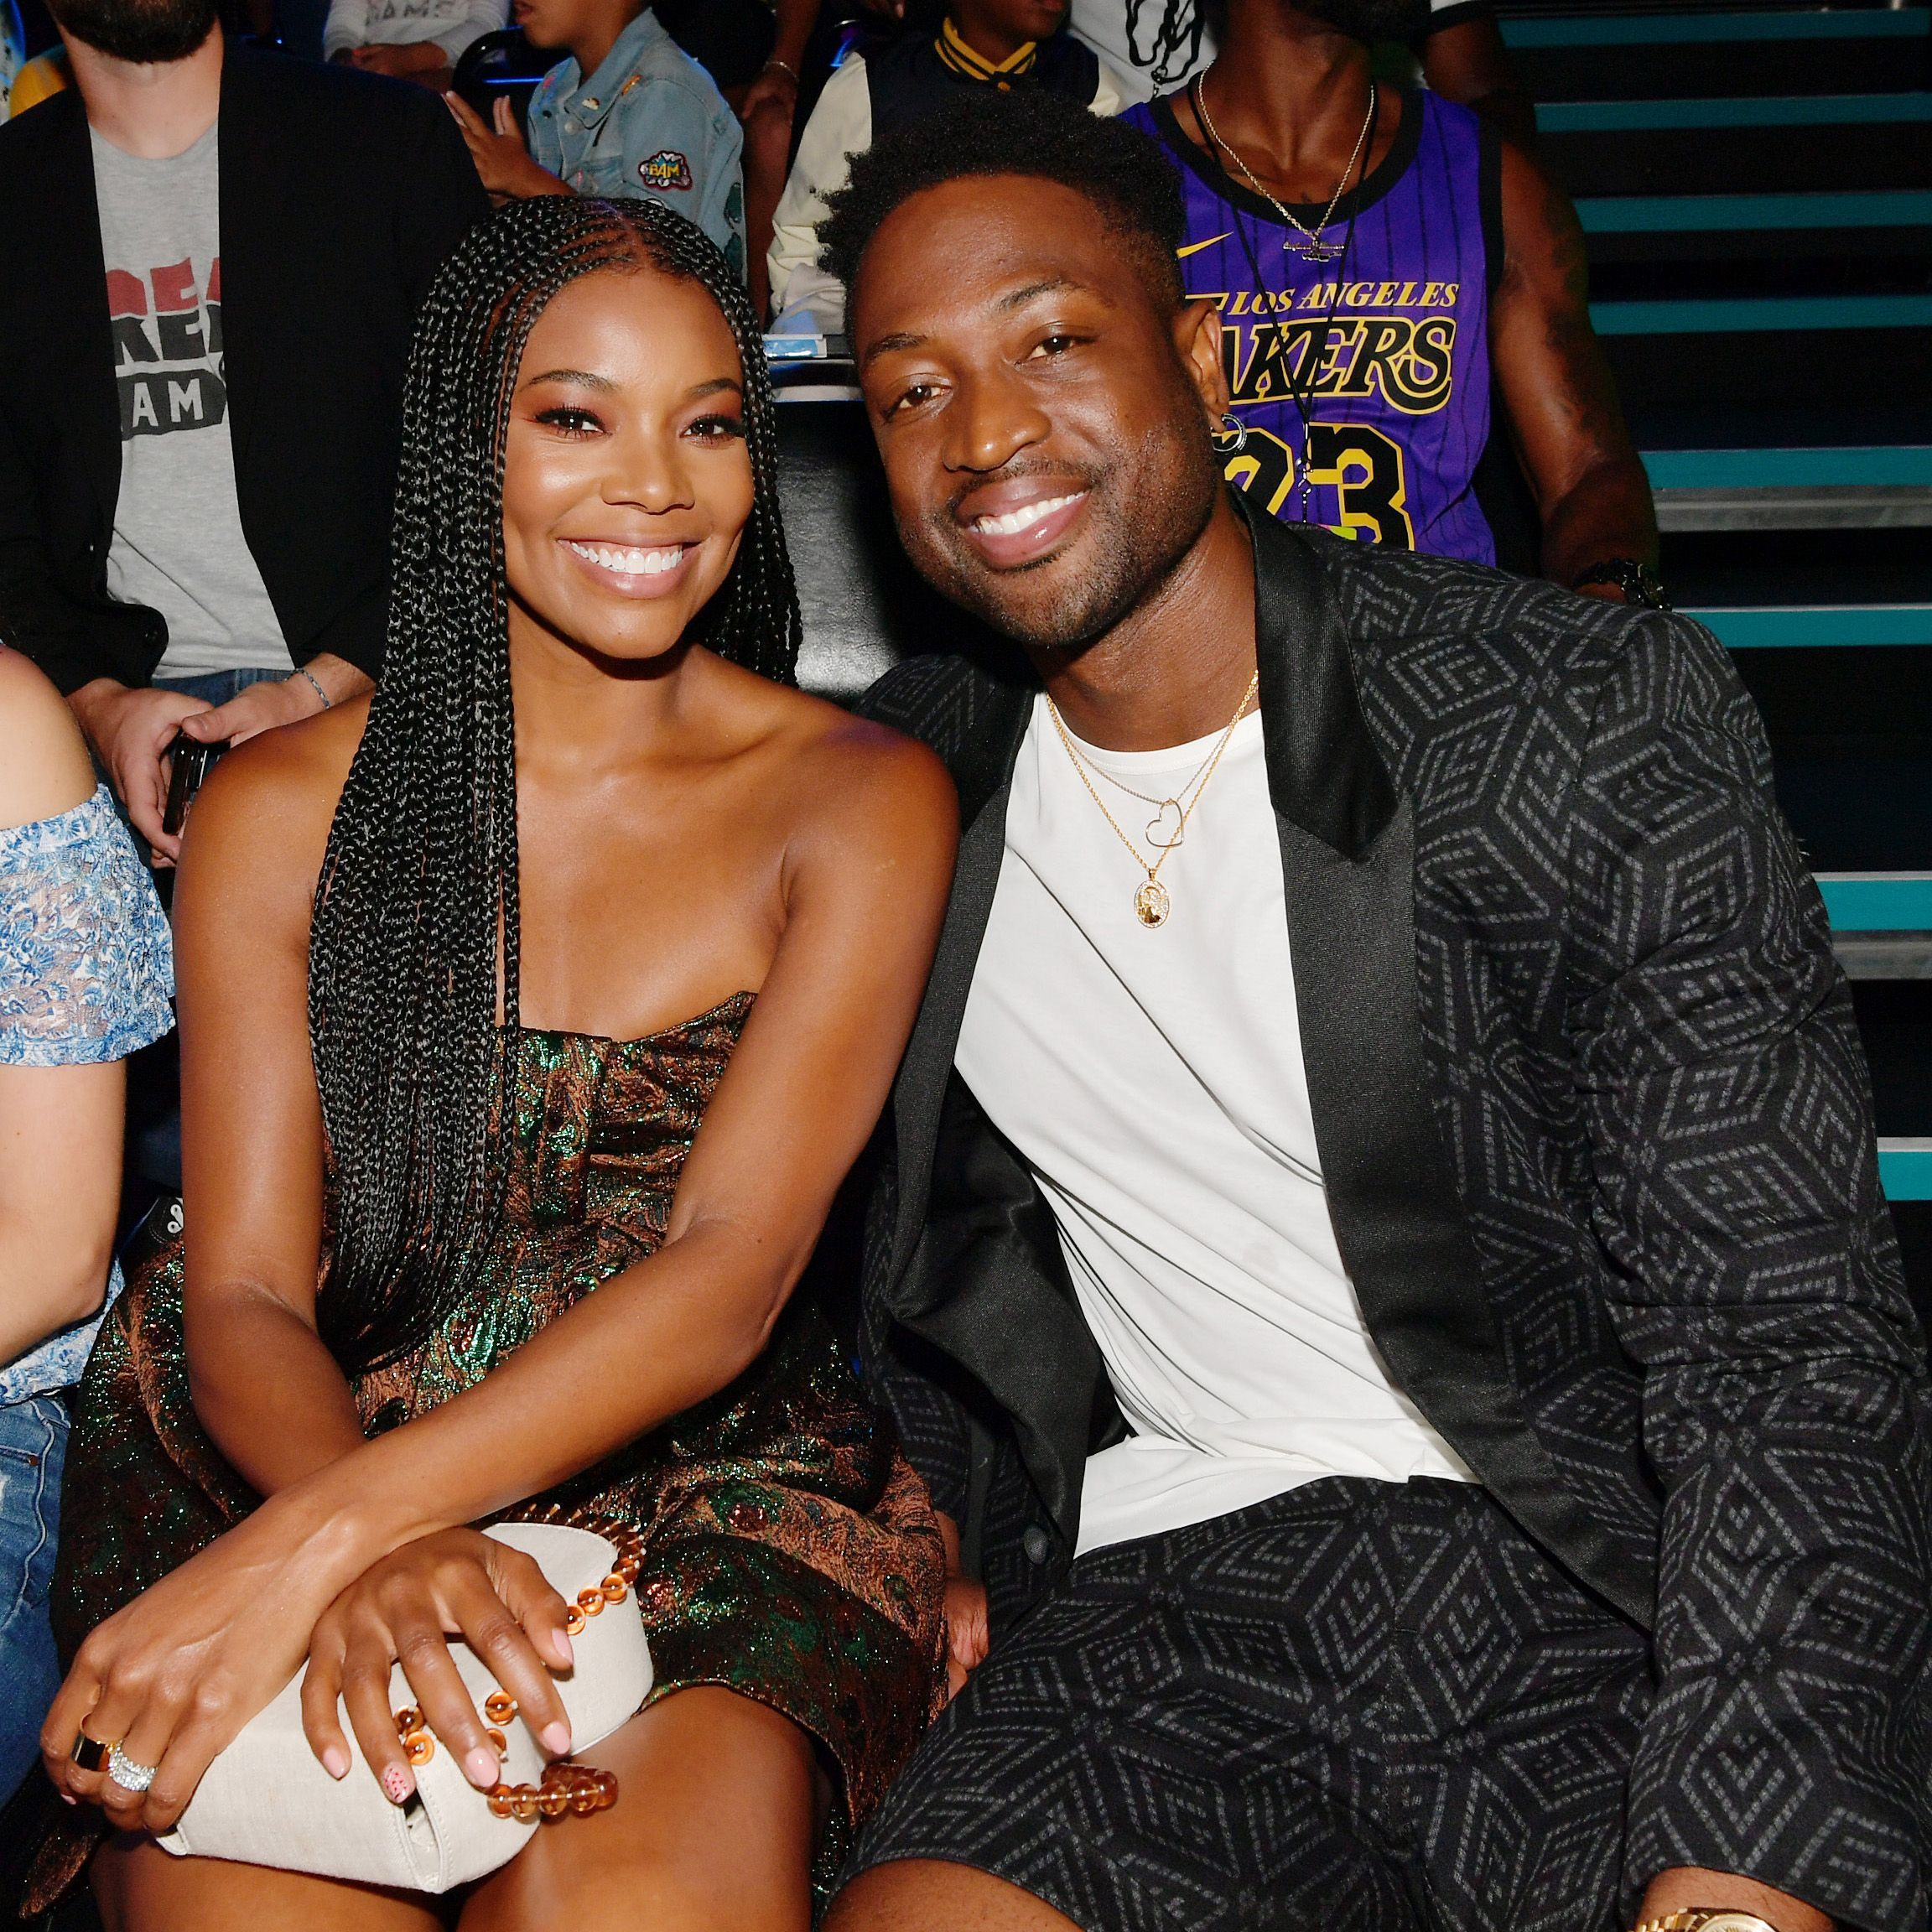 Gabrielle Union and Dwyane Wade attending a Nickelodeon event on July 11, 2019 | Photo: Getty Images